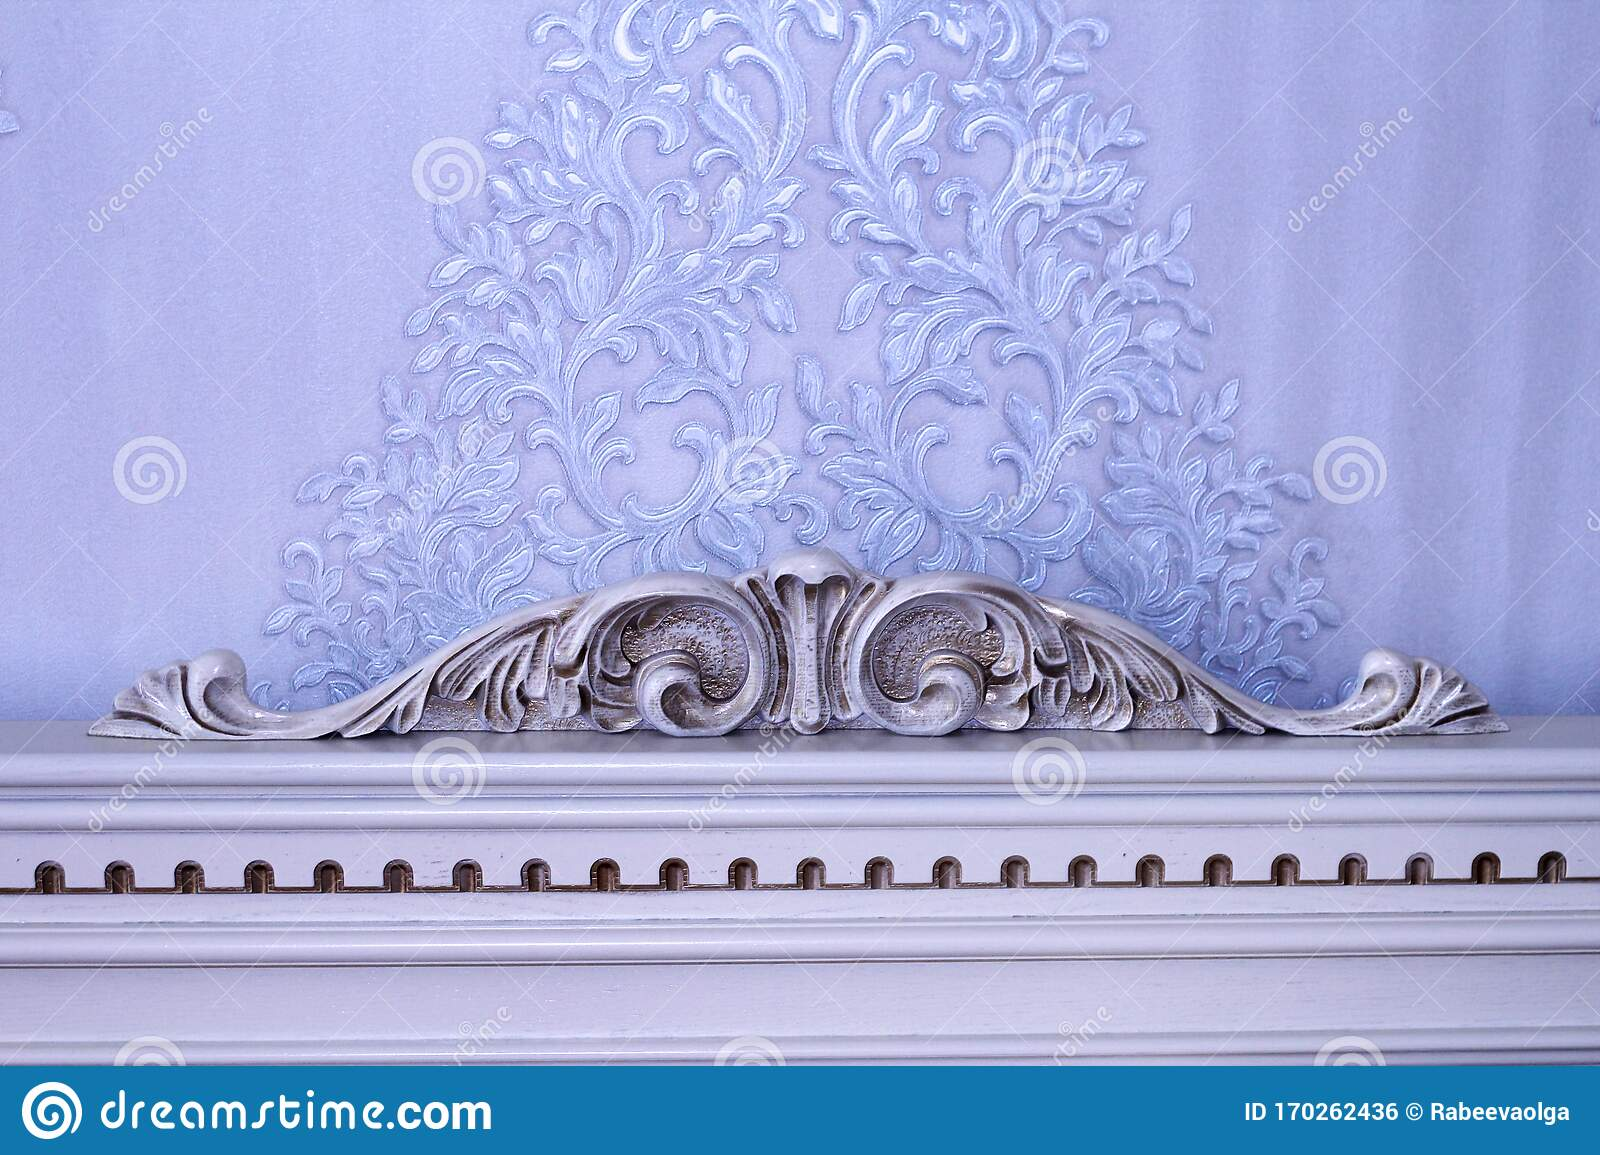 Headboard Vintage Wooden With Wood Carving Stock Photo Image Of Elegance Decor 170262436